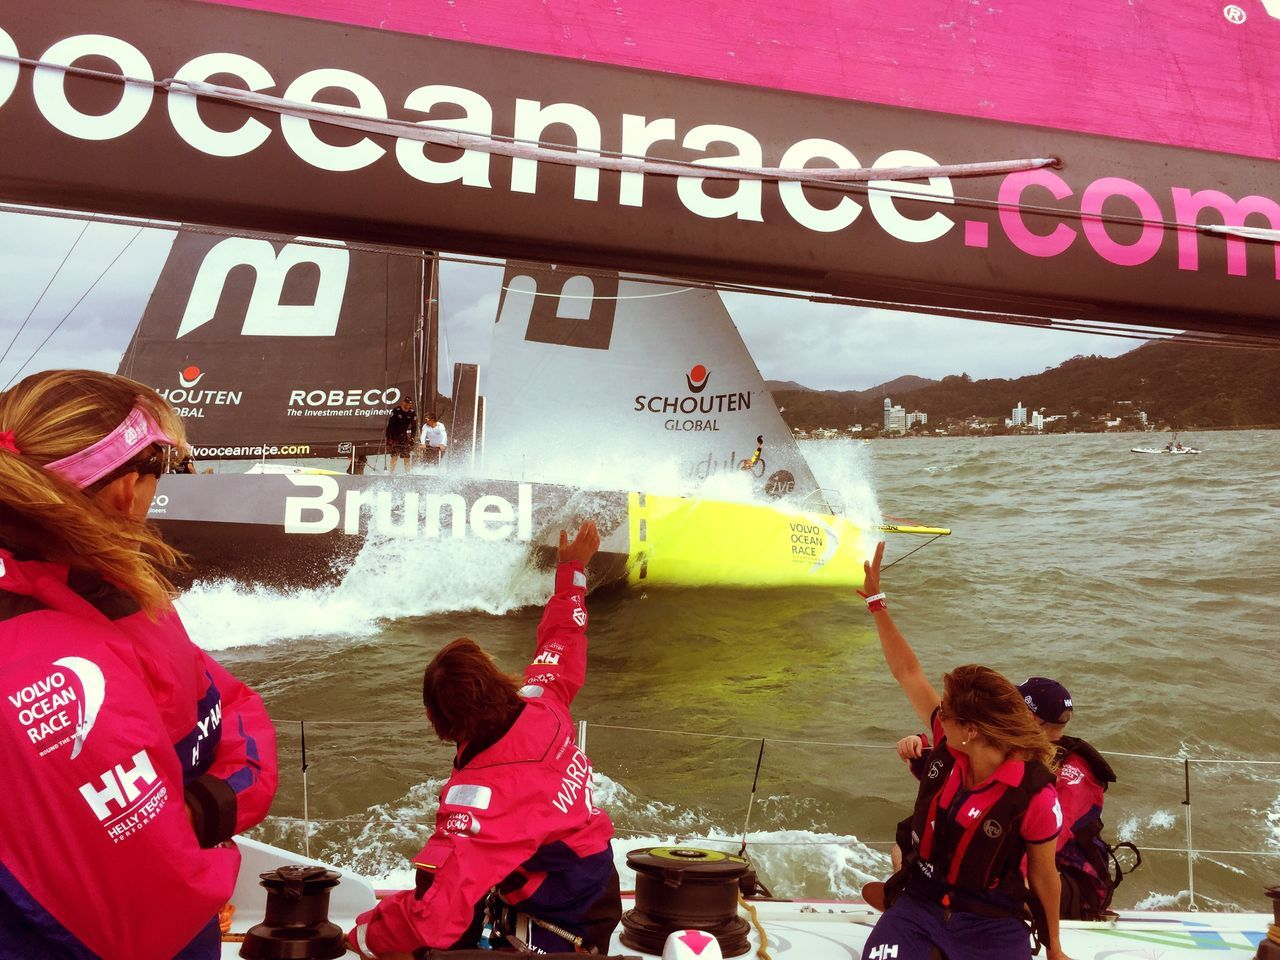 TEAMGAW Volvo Ocean Race Sports Photography Team_SCA Vor TeamSCA Regata Sailing ItajaiStopOver